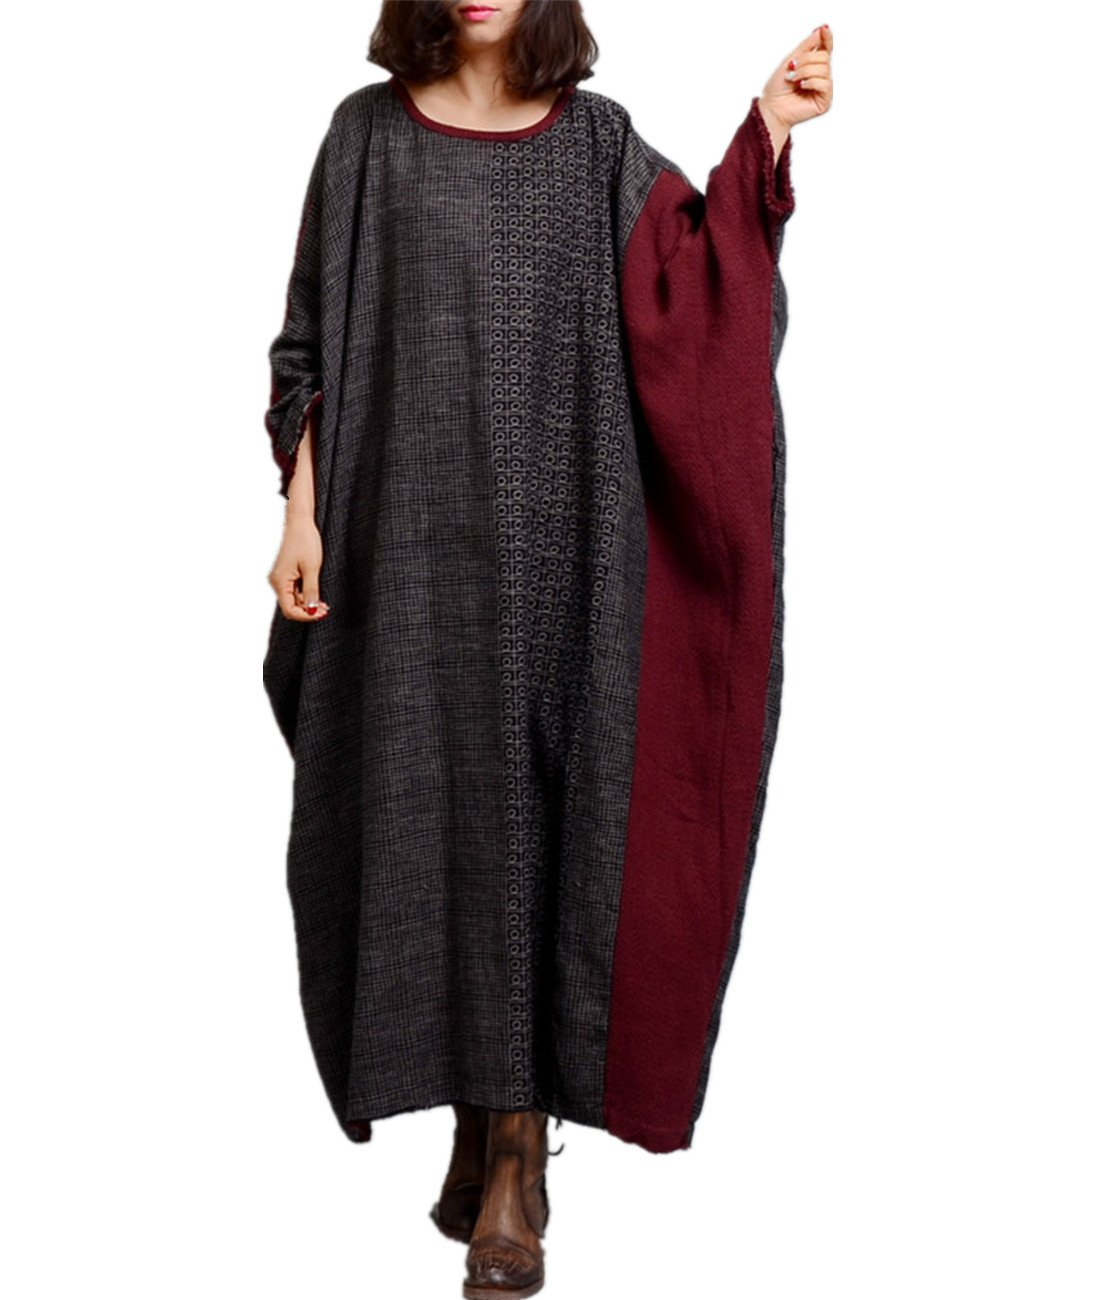 Yesno JP8 Women Long Loose Maxi Dress 100% Linen Ethnic Style Color Contrast Batwing Sleeve Fringed Cuff Plus Size